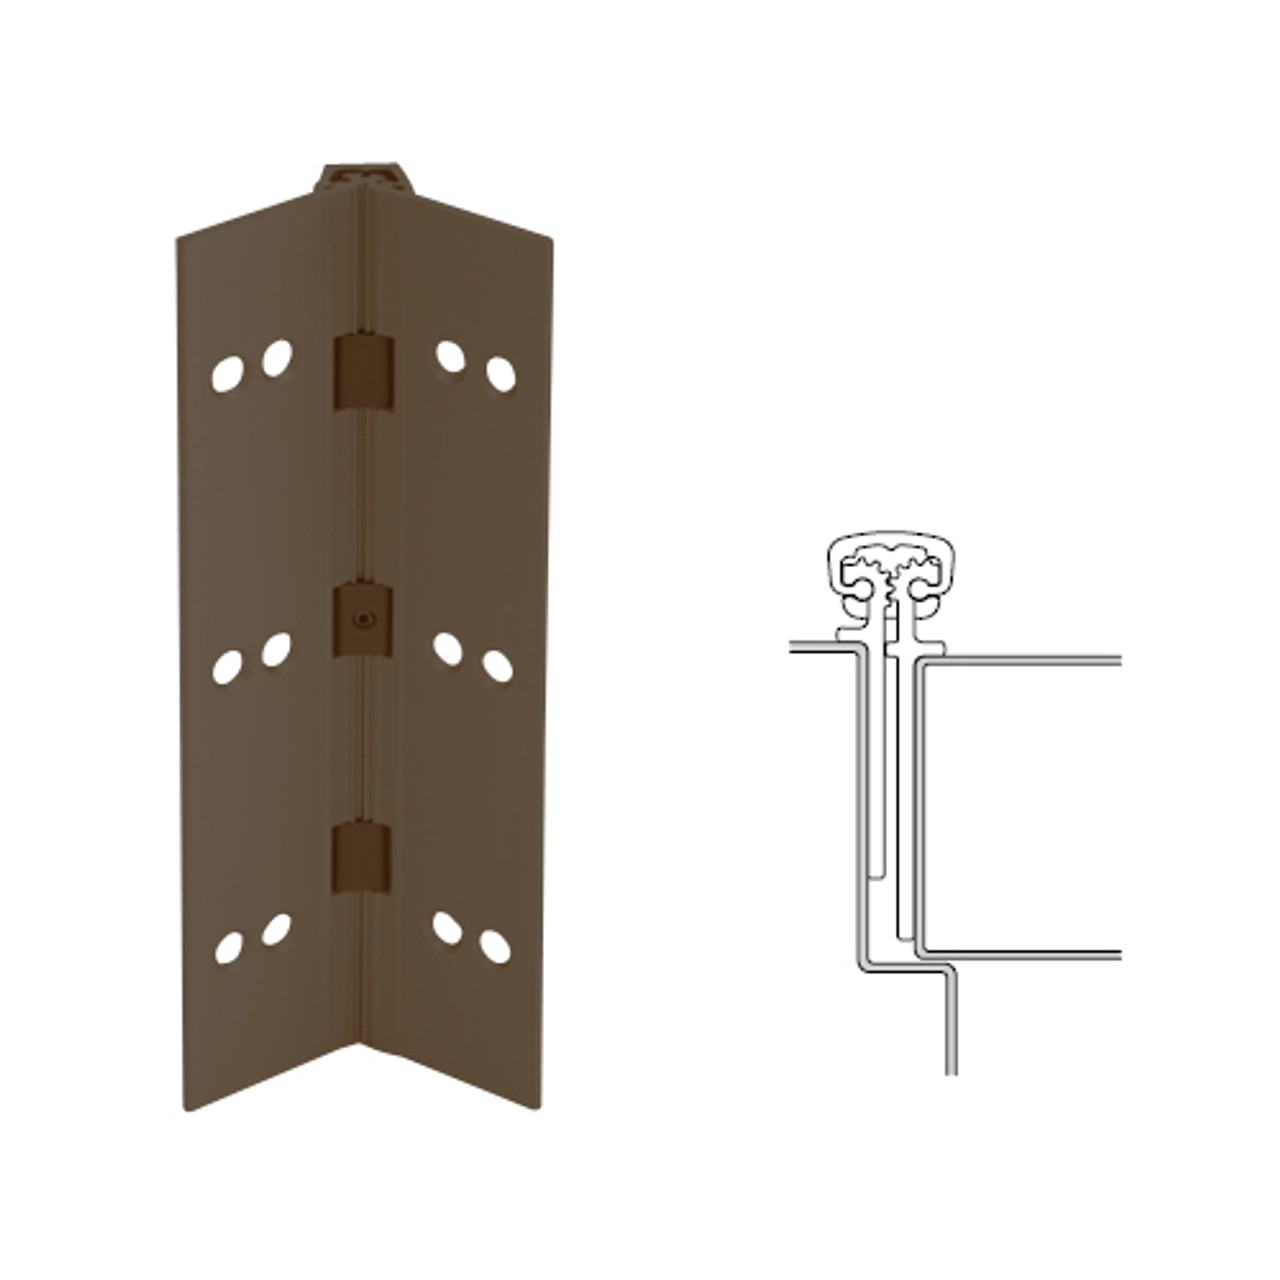 026XY-313AN-120-TEKWD IVES Full Mortise Continuous Geared Hinges with Wood Screws in Dark Bronze Anodized